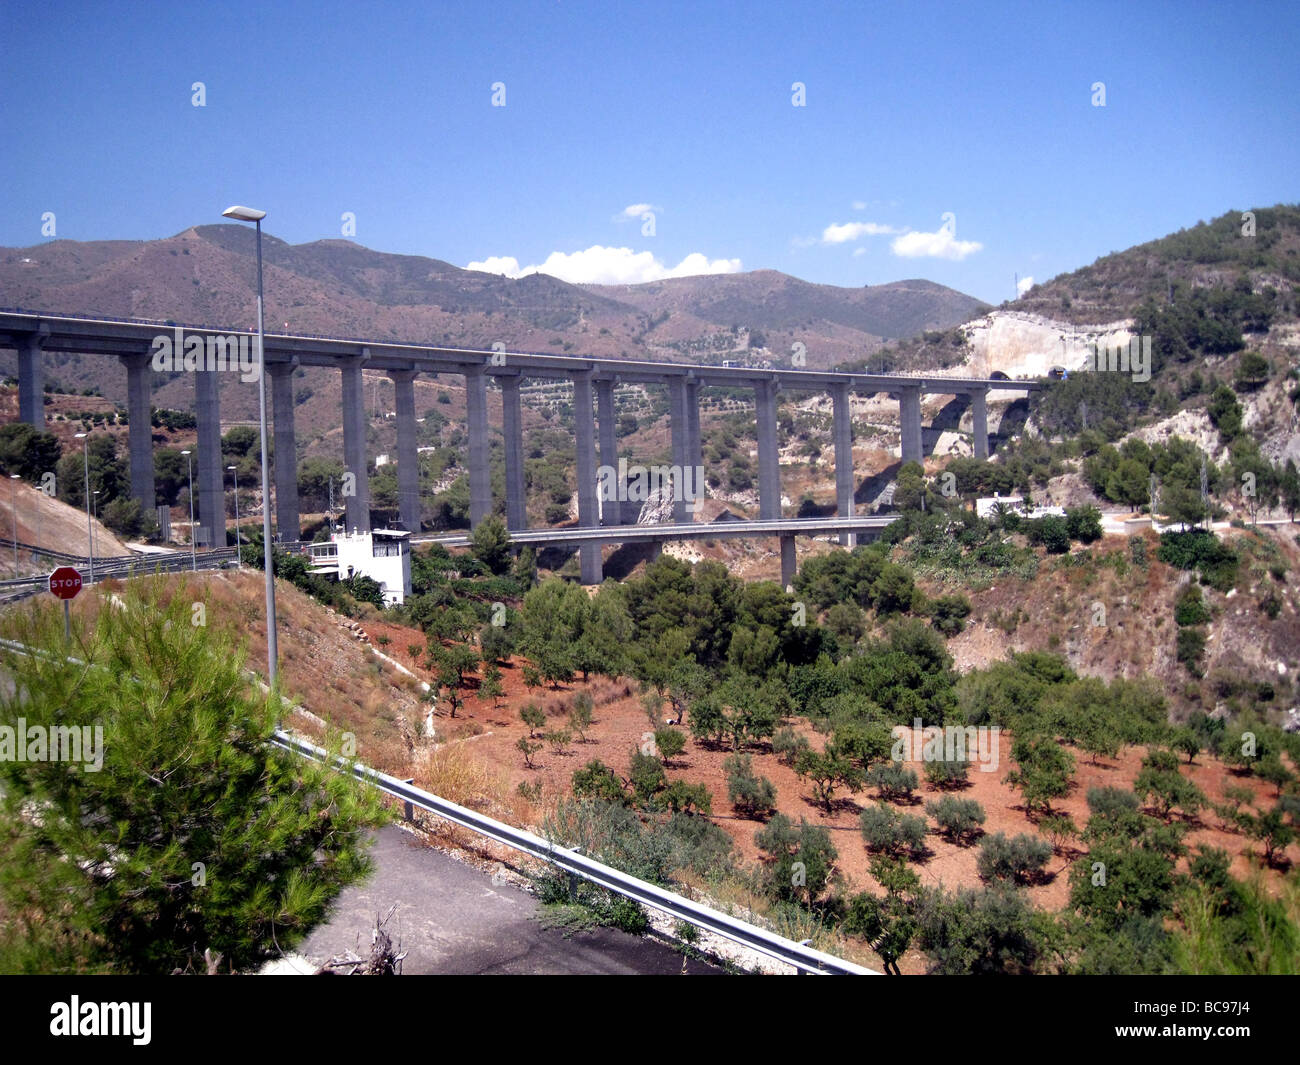 Car Hire Spain Malaga Stock Photos Car Hire Spain Malaga Stock